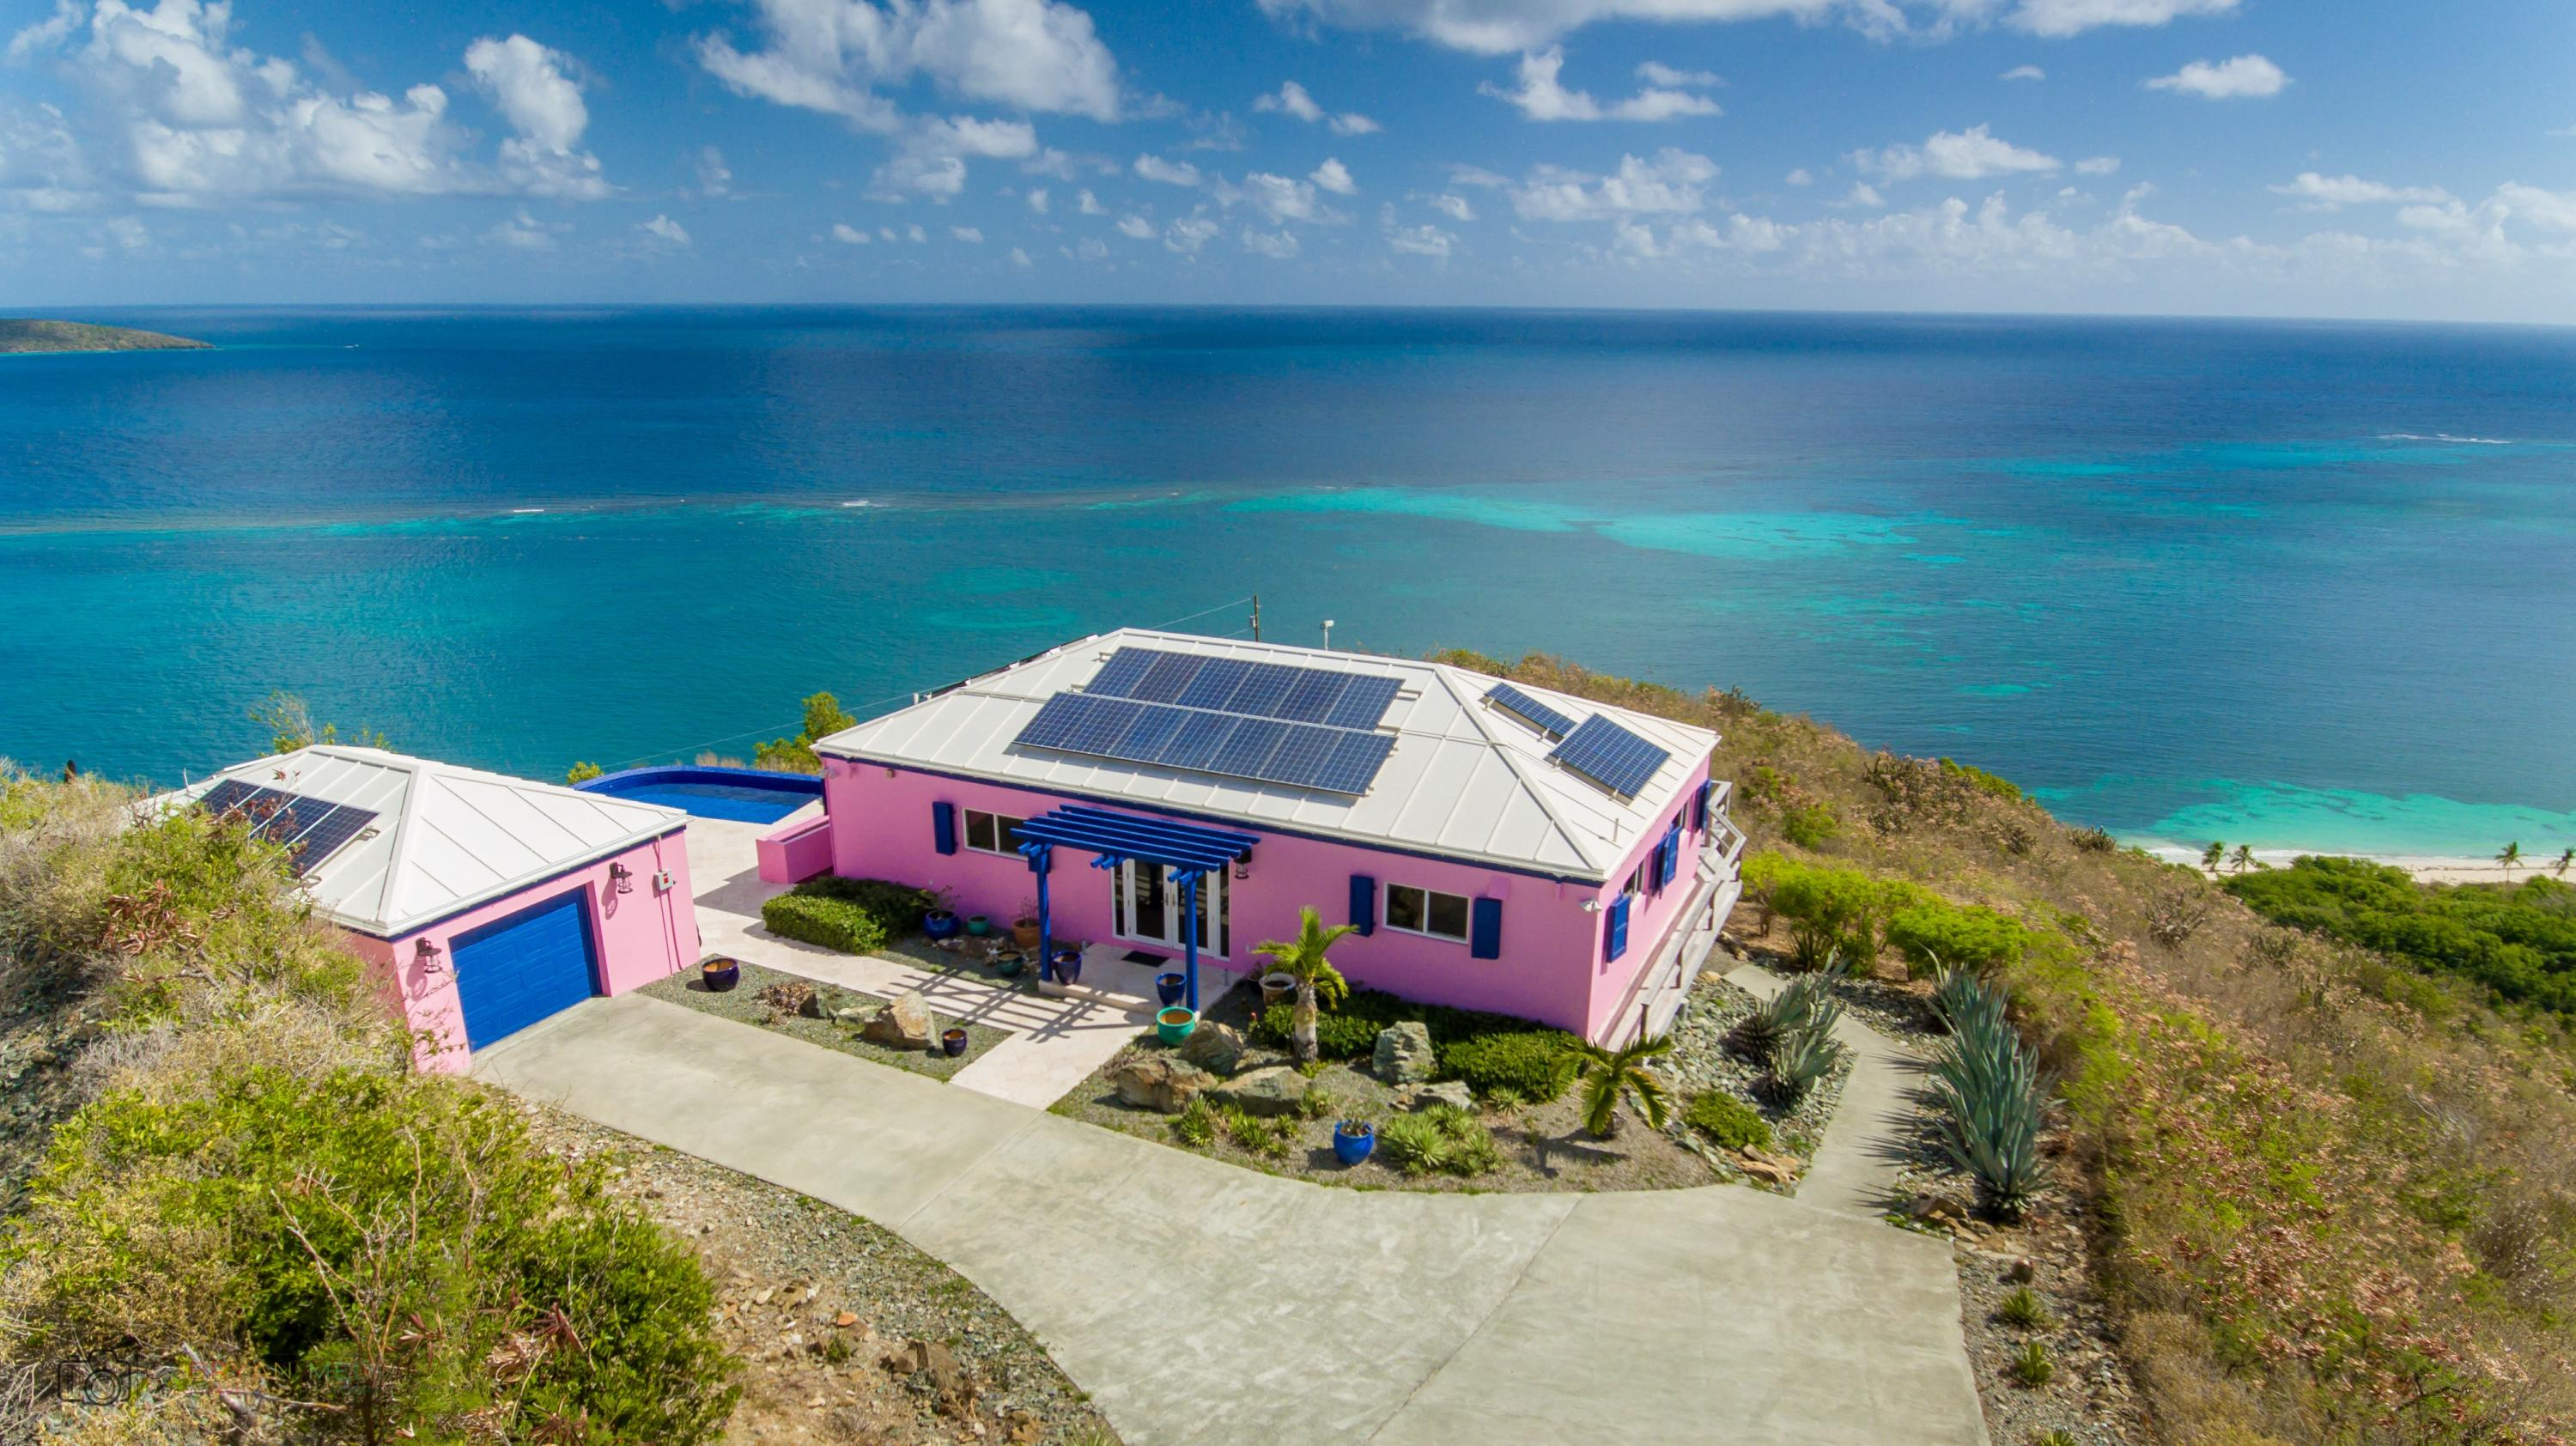 Single Family Home for Sale at 51 & 52 North Grapetree EB 51 & 52 North Grapetree EB St Croix, Virgin Islands 00820 United States Virgin Islands